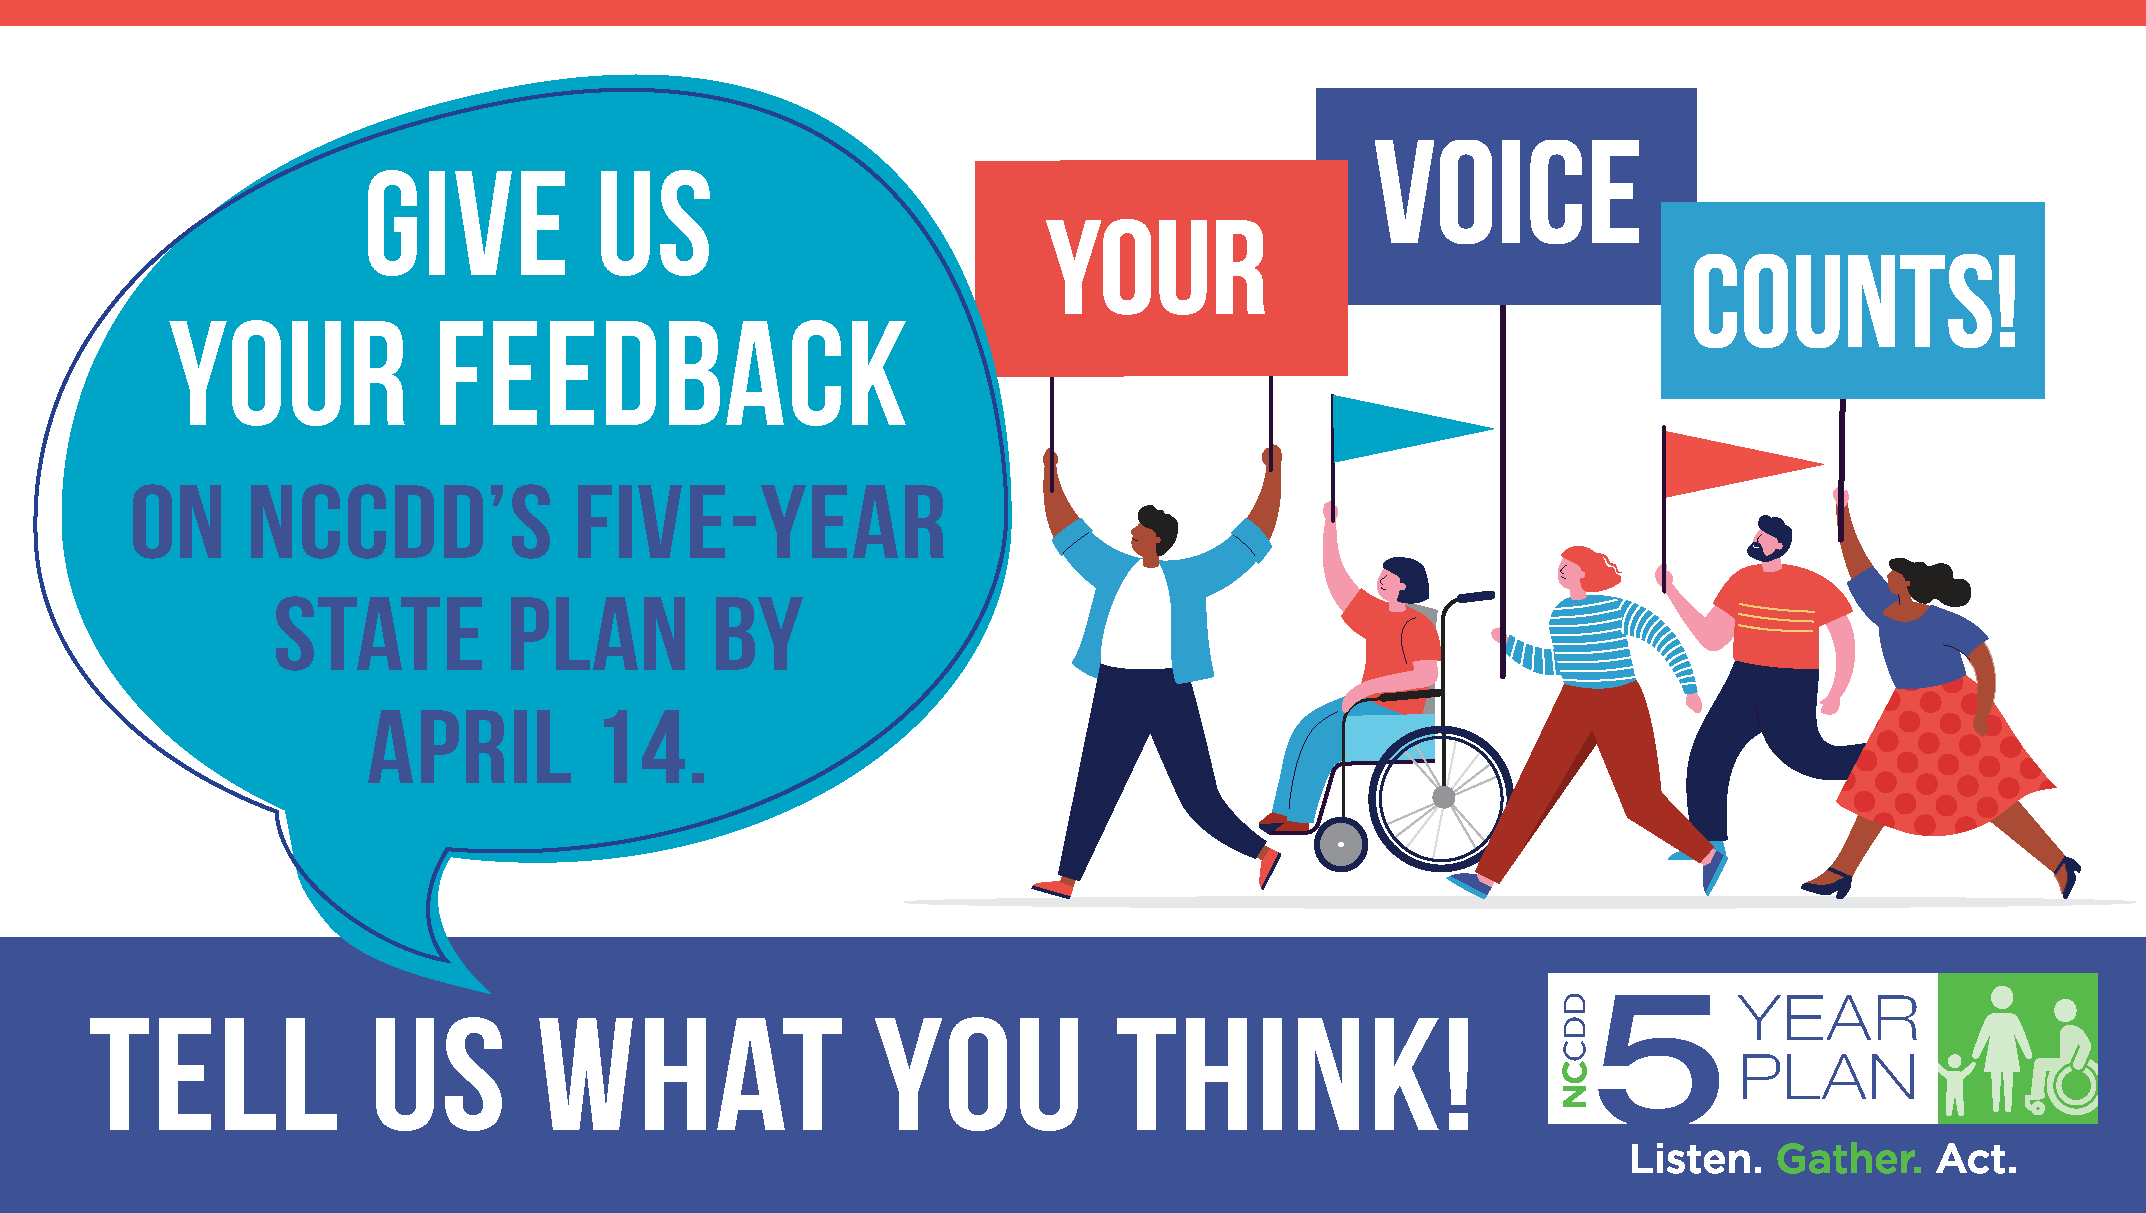 Your Voice Counts! Give Us Your Feedback on NCCDD's Five-Year State Plan by April 14.